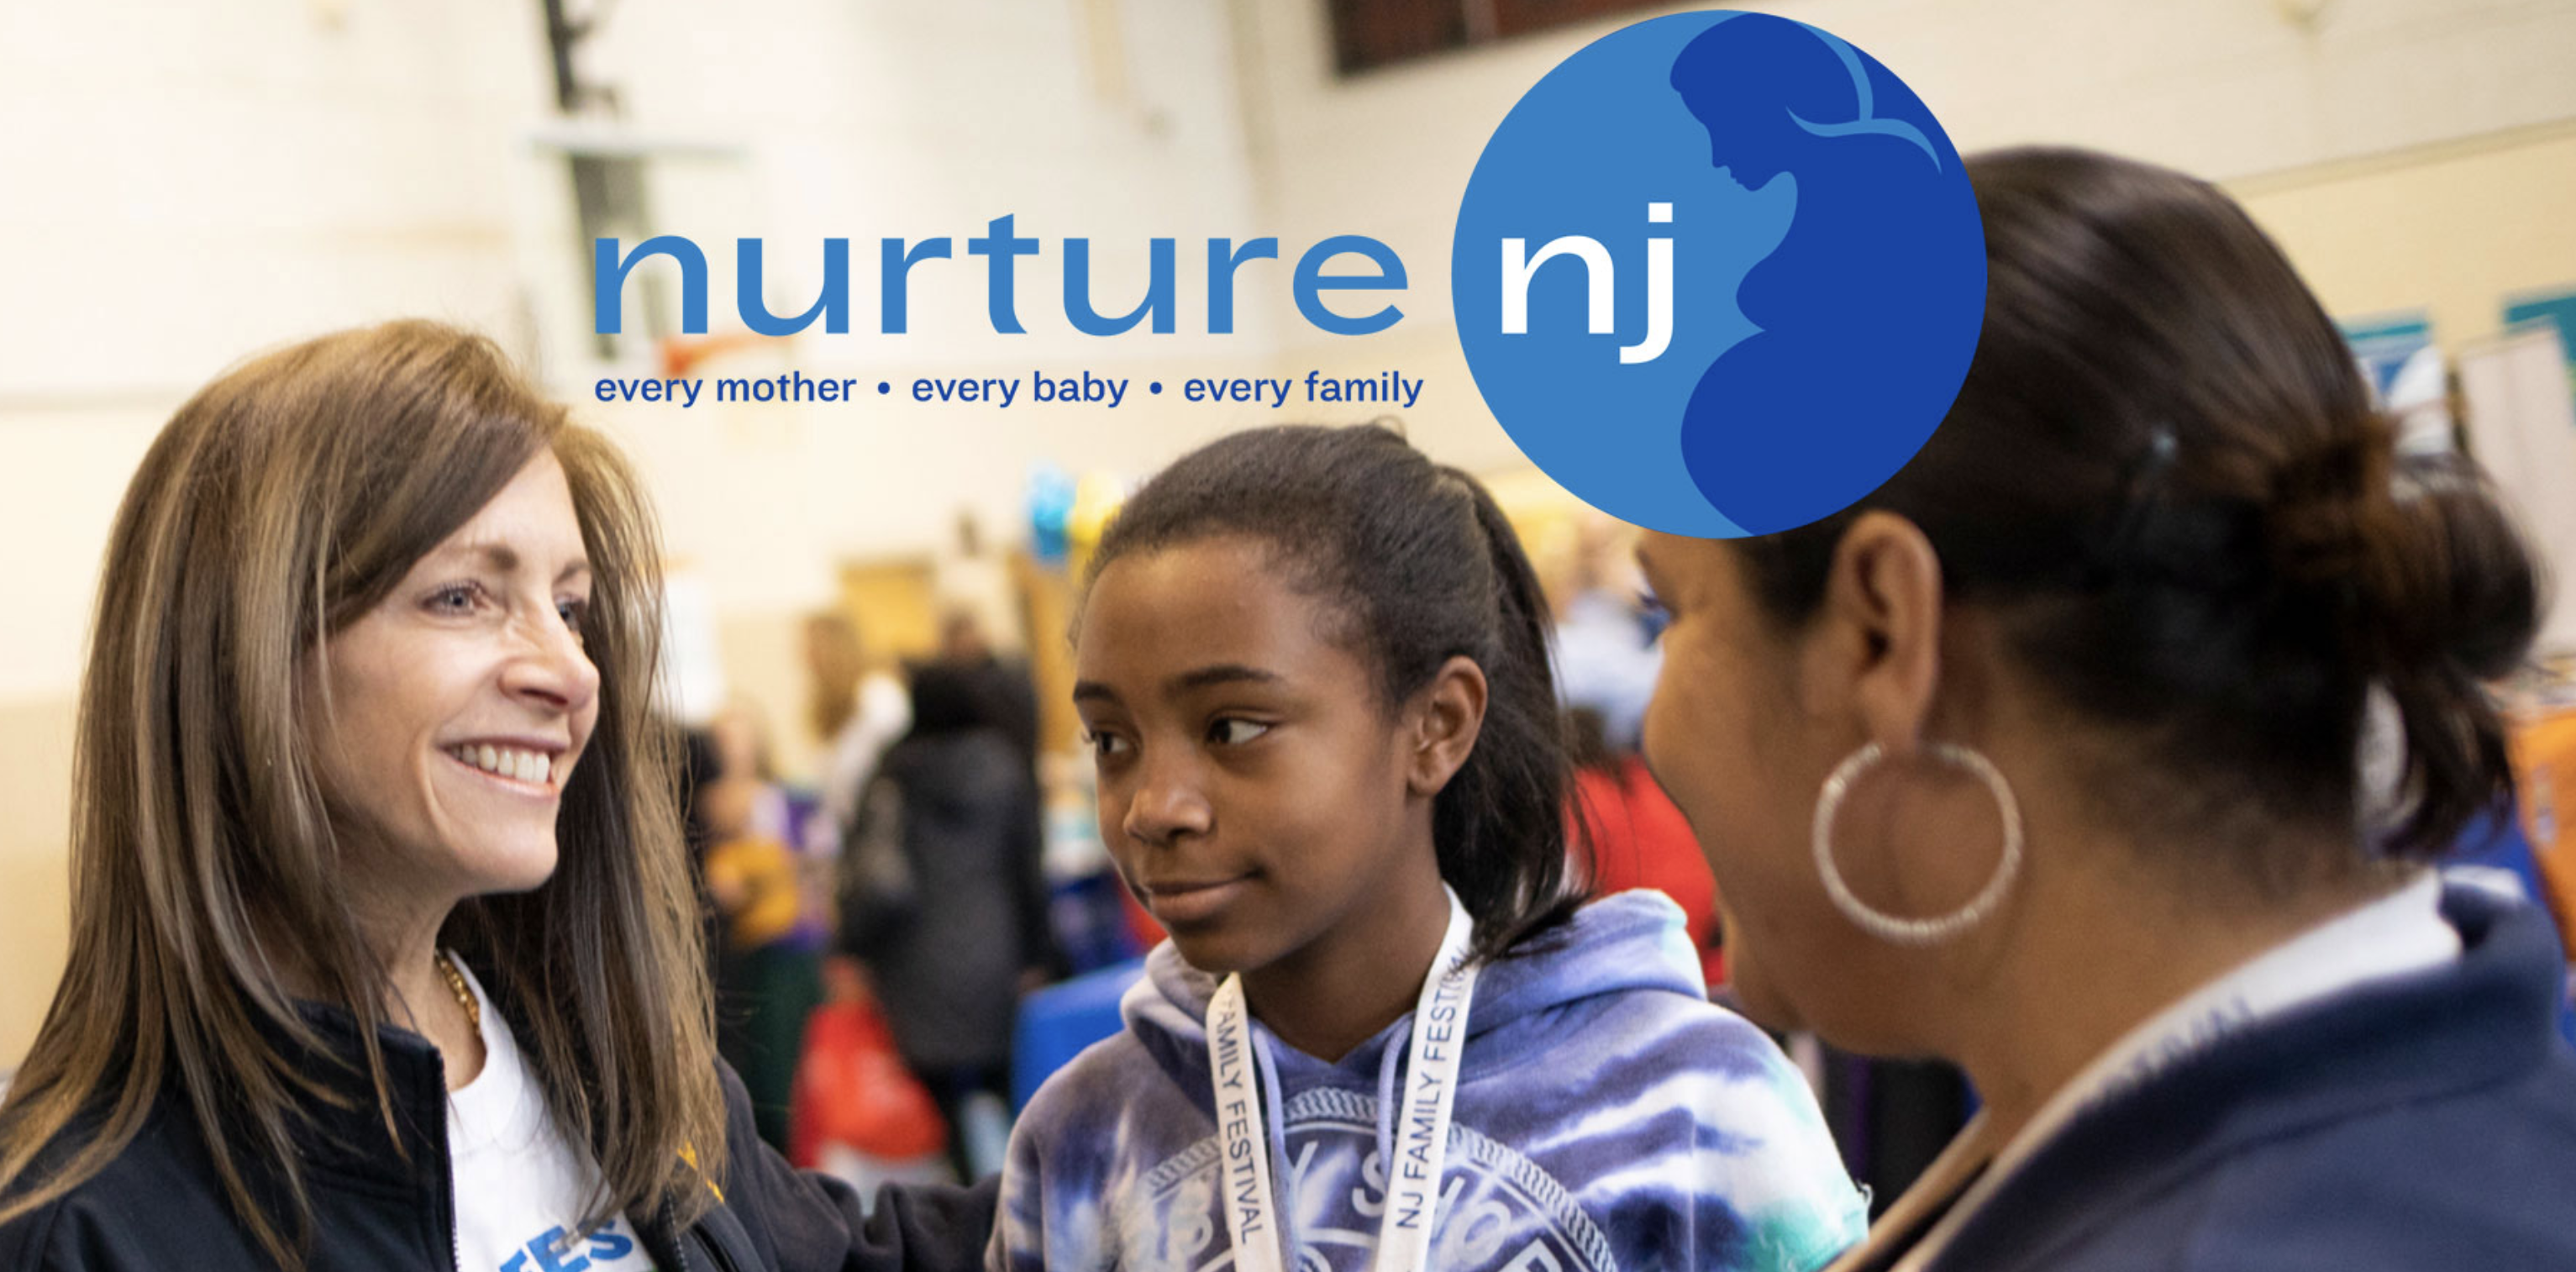 nurture nj foundation flyer